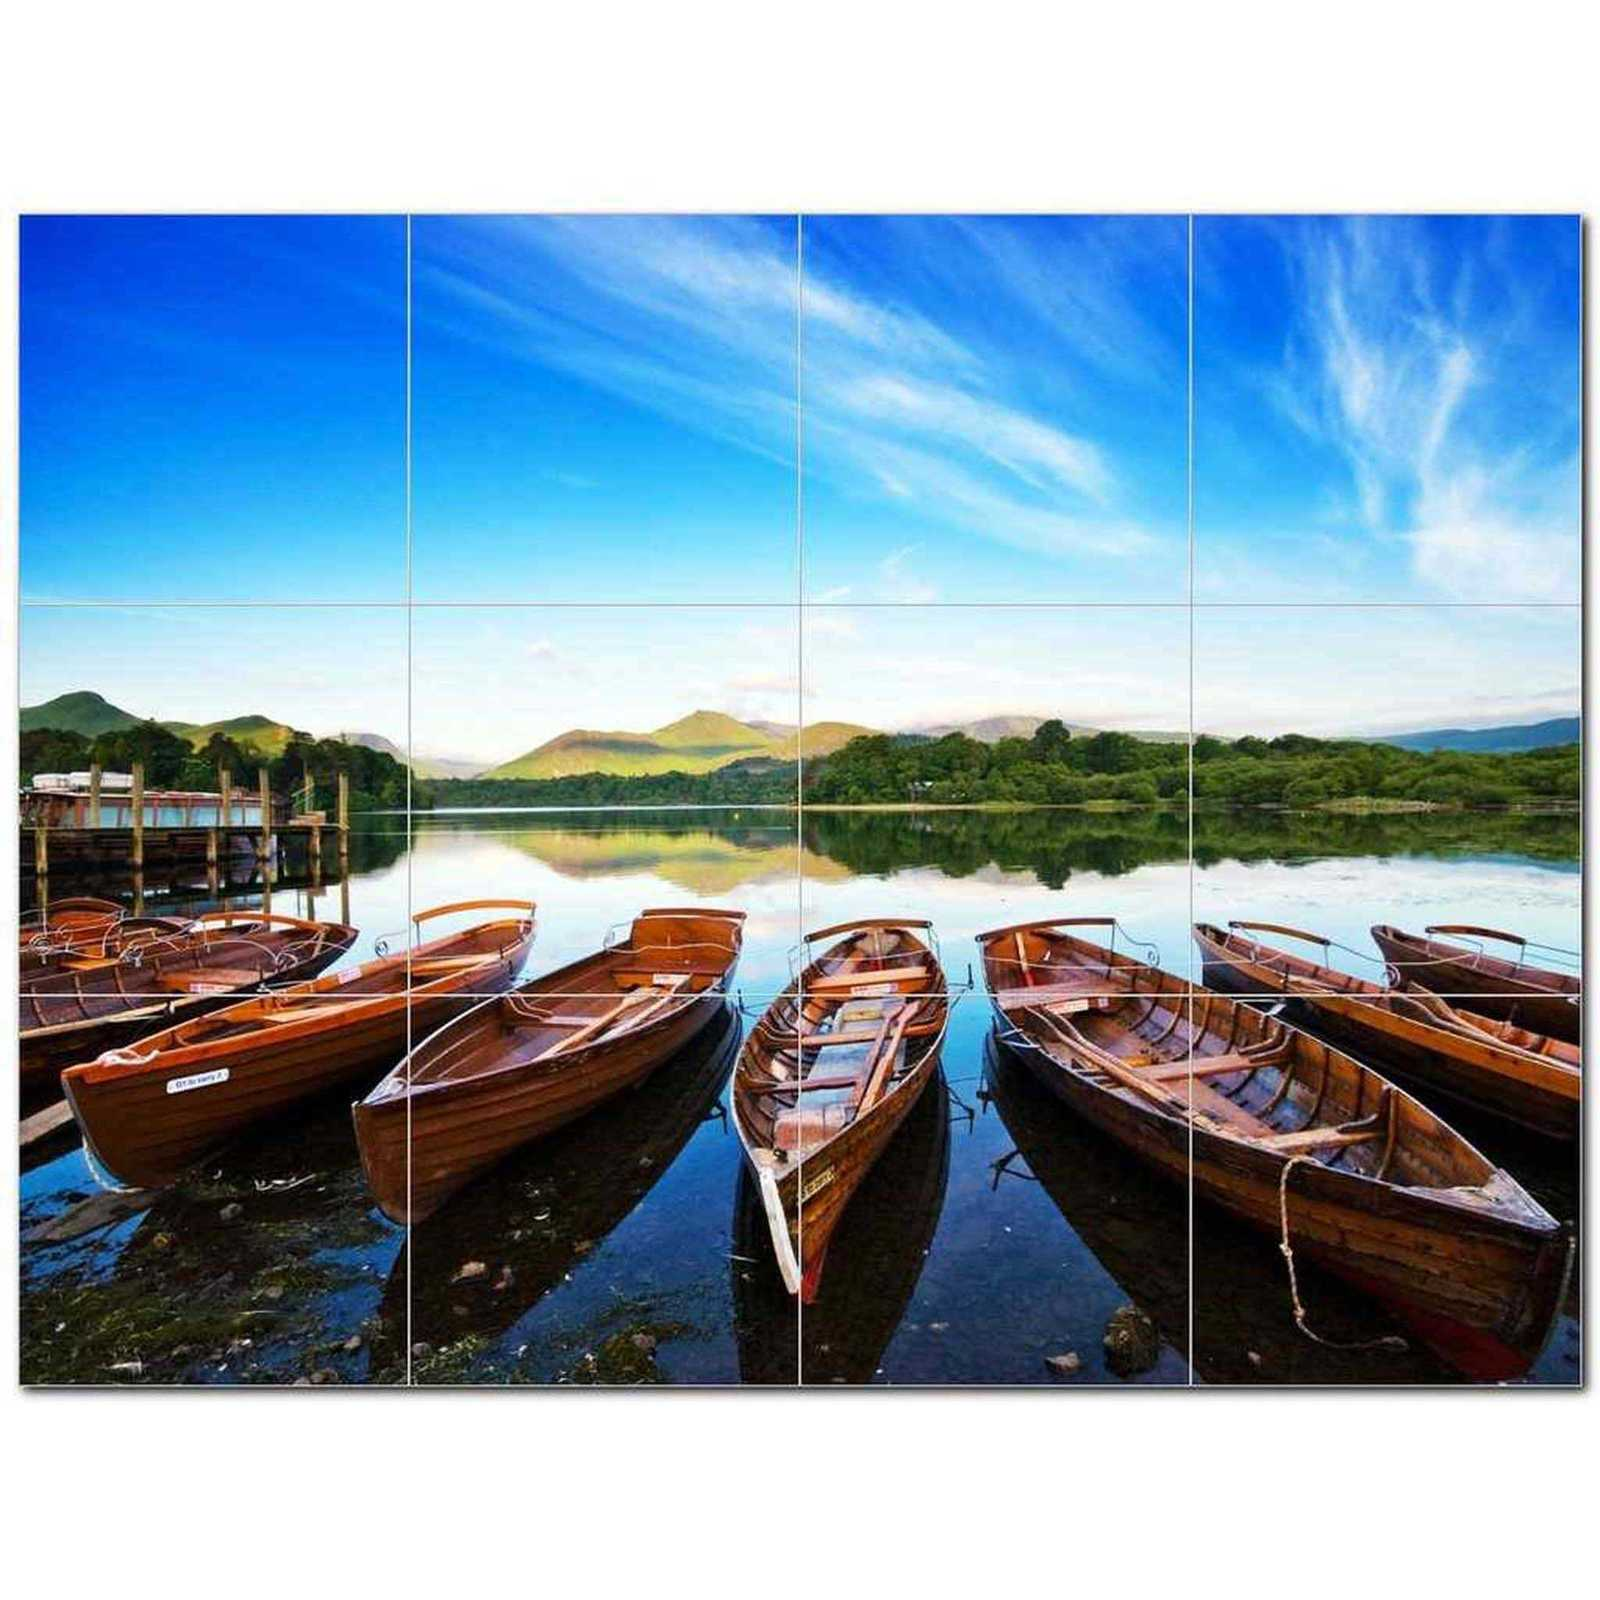 Primary image for Ship Picture Ceramic Tile Mural Kitchen Backsplash Bathroom Shower BAZ405873